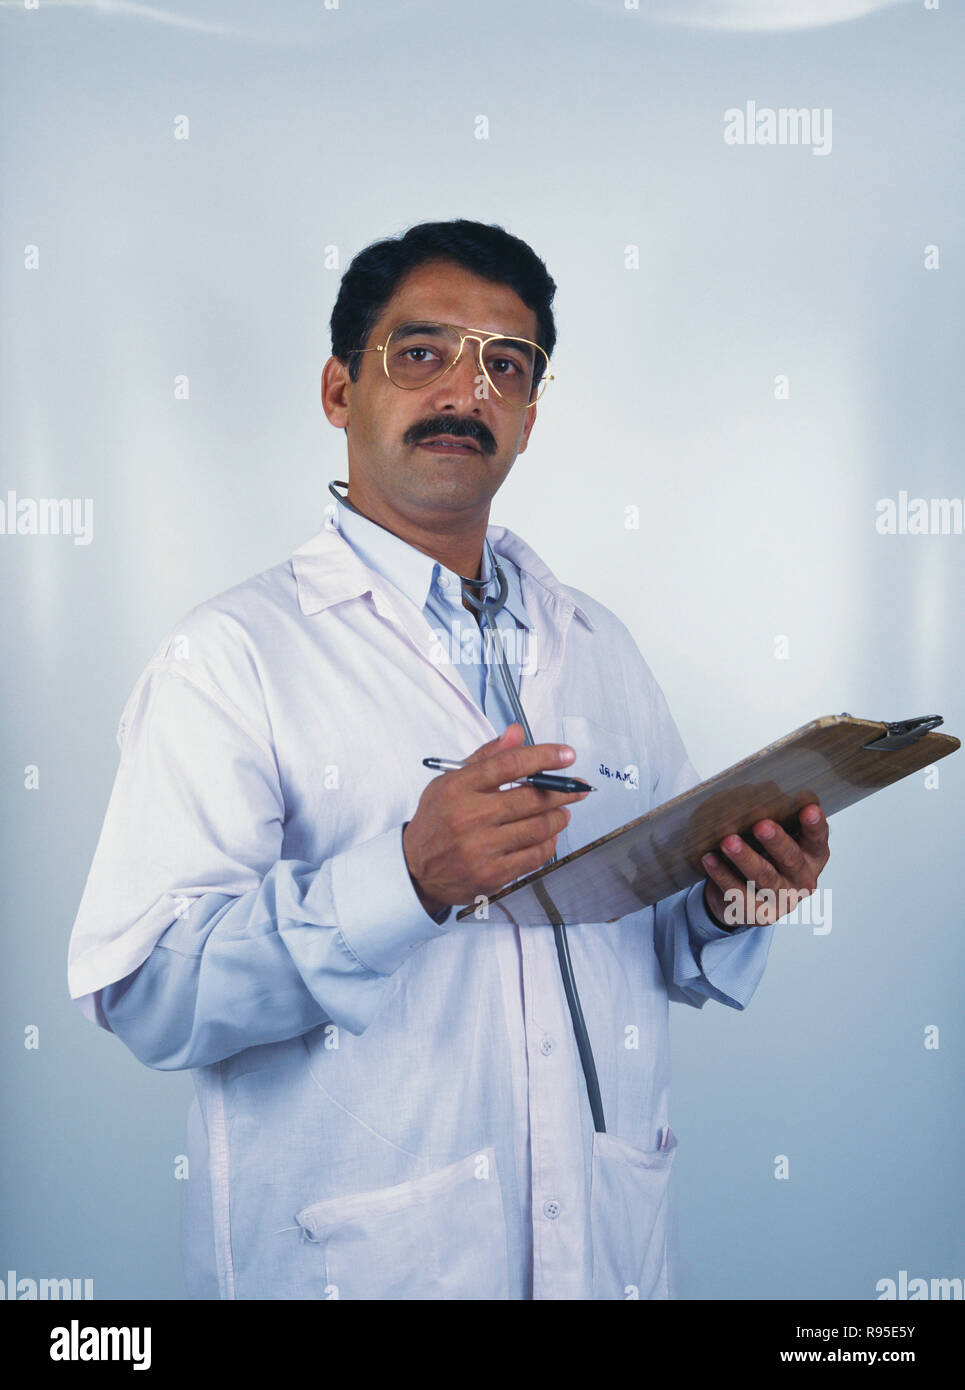 doctor, india, MR - Stock Image